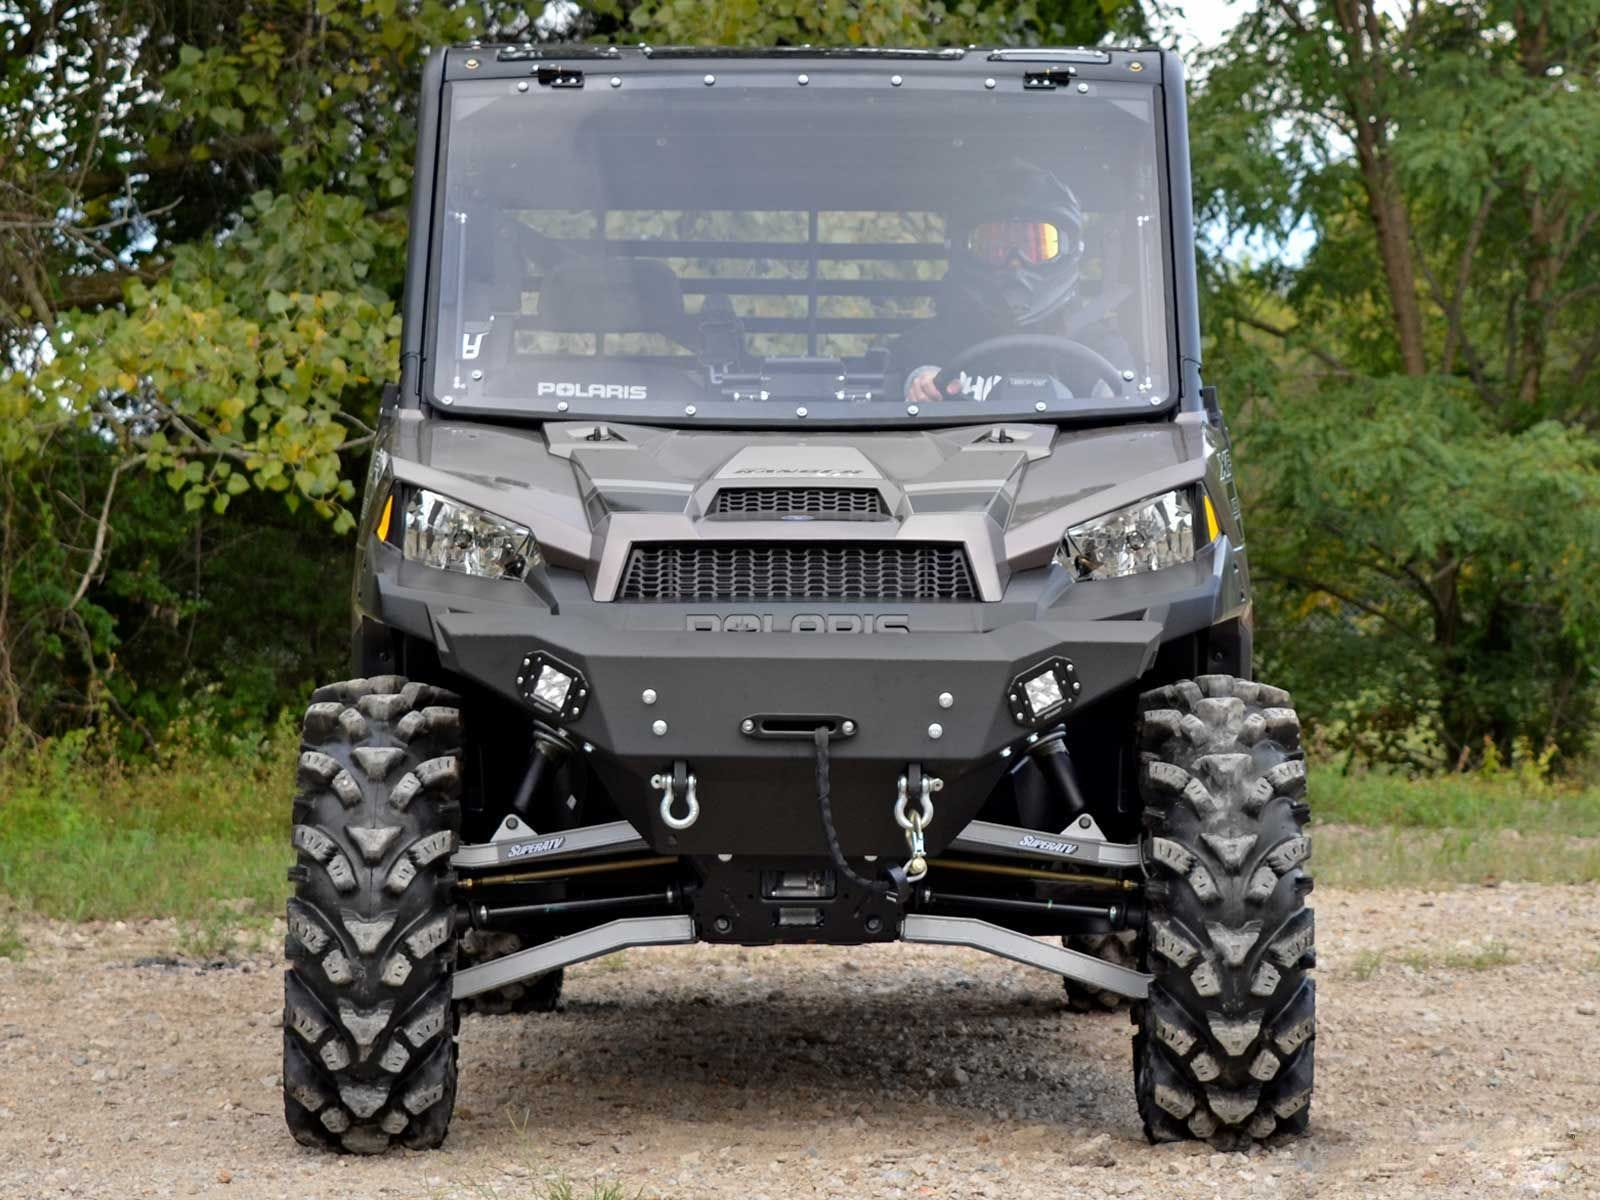 Sol Dc88s also 14 e2 80 b3 Aluminum Golf Cart Wheels And Tire  bo in addition Super Atv Half Scratch Resistant Windshield Can Am Maverick Trail together with 3 Inch Lift Kit By Super Atv Ranger Xp 900 also Utv Side Mirror Pair. on yamaha golf cart accessories product